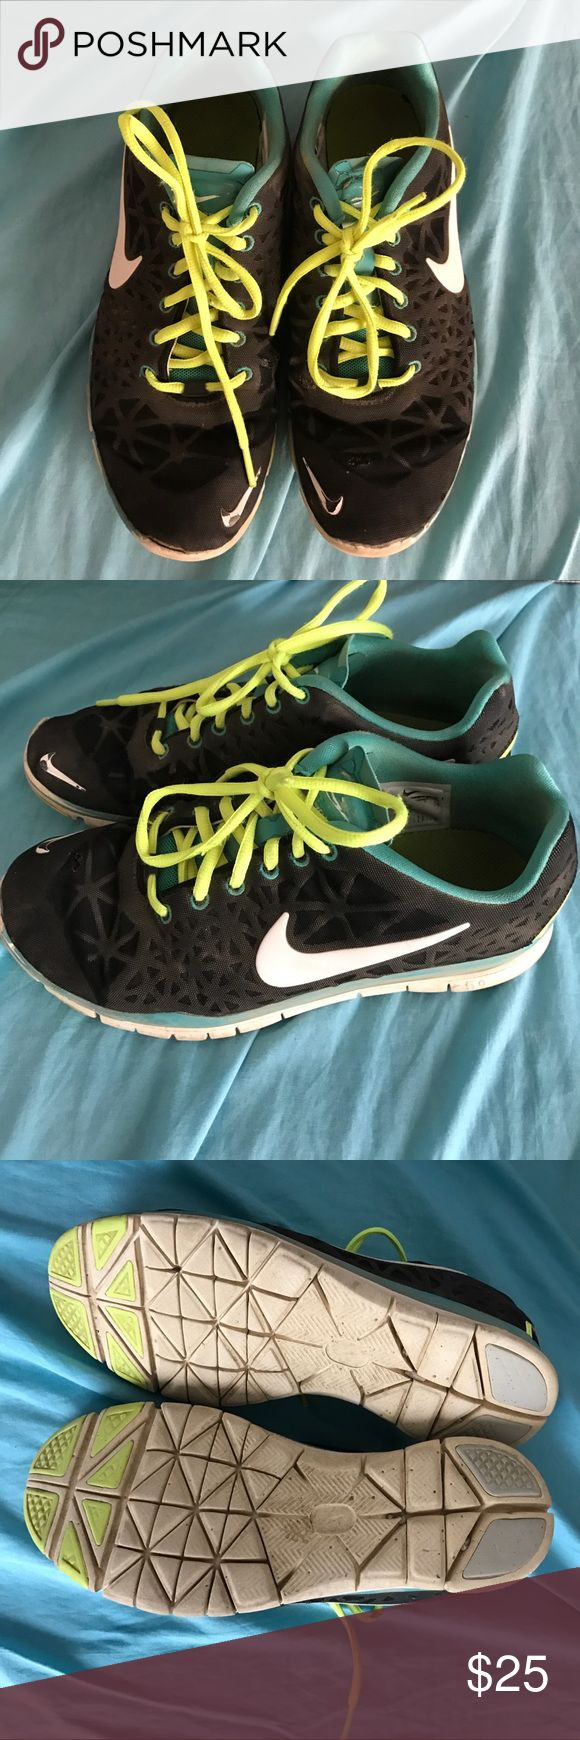 Black & Neon Nike Running Shoes I have wore things a few times outside. I can wash them before sending them out if requested. Nike Shoes Athletic Shoes